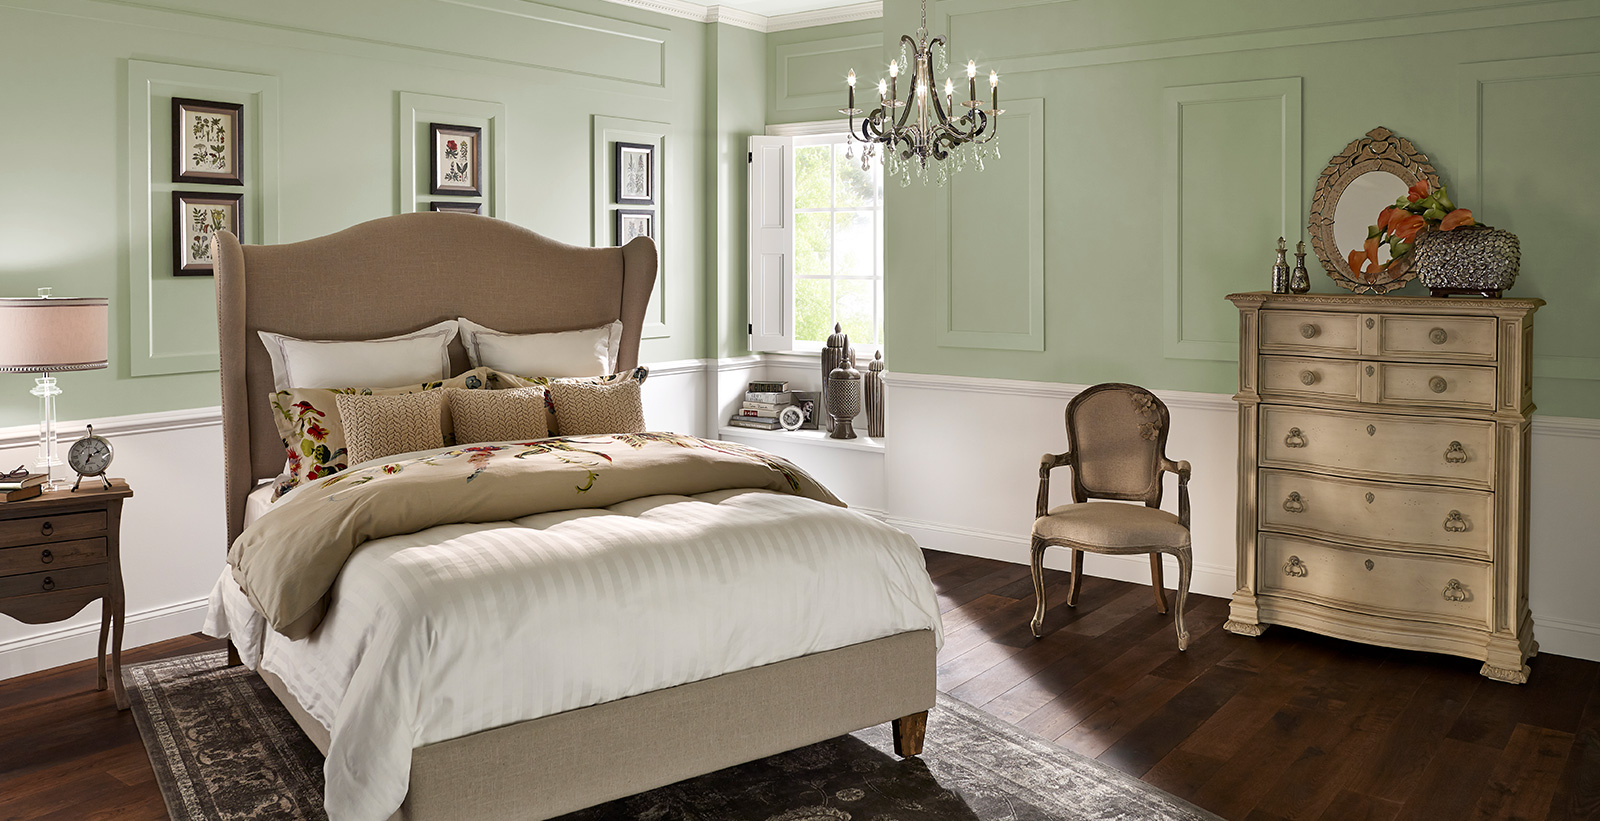 French Country Bedroom | Green Bedroom Gallery | Behr